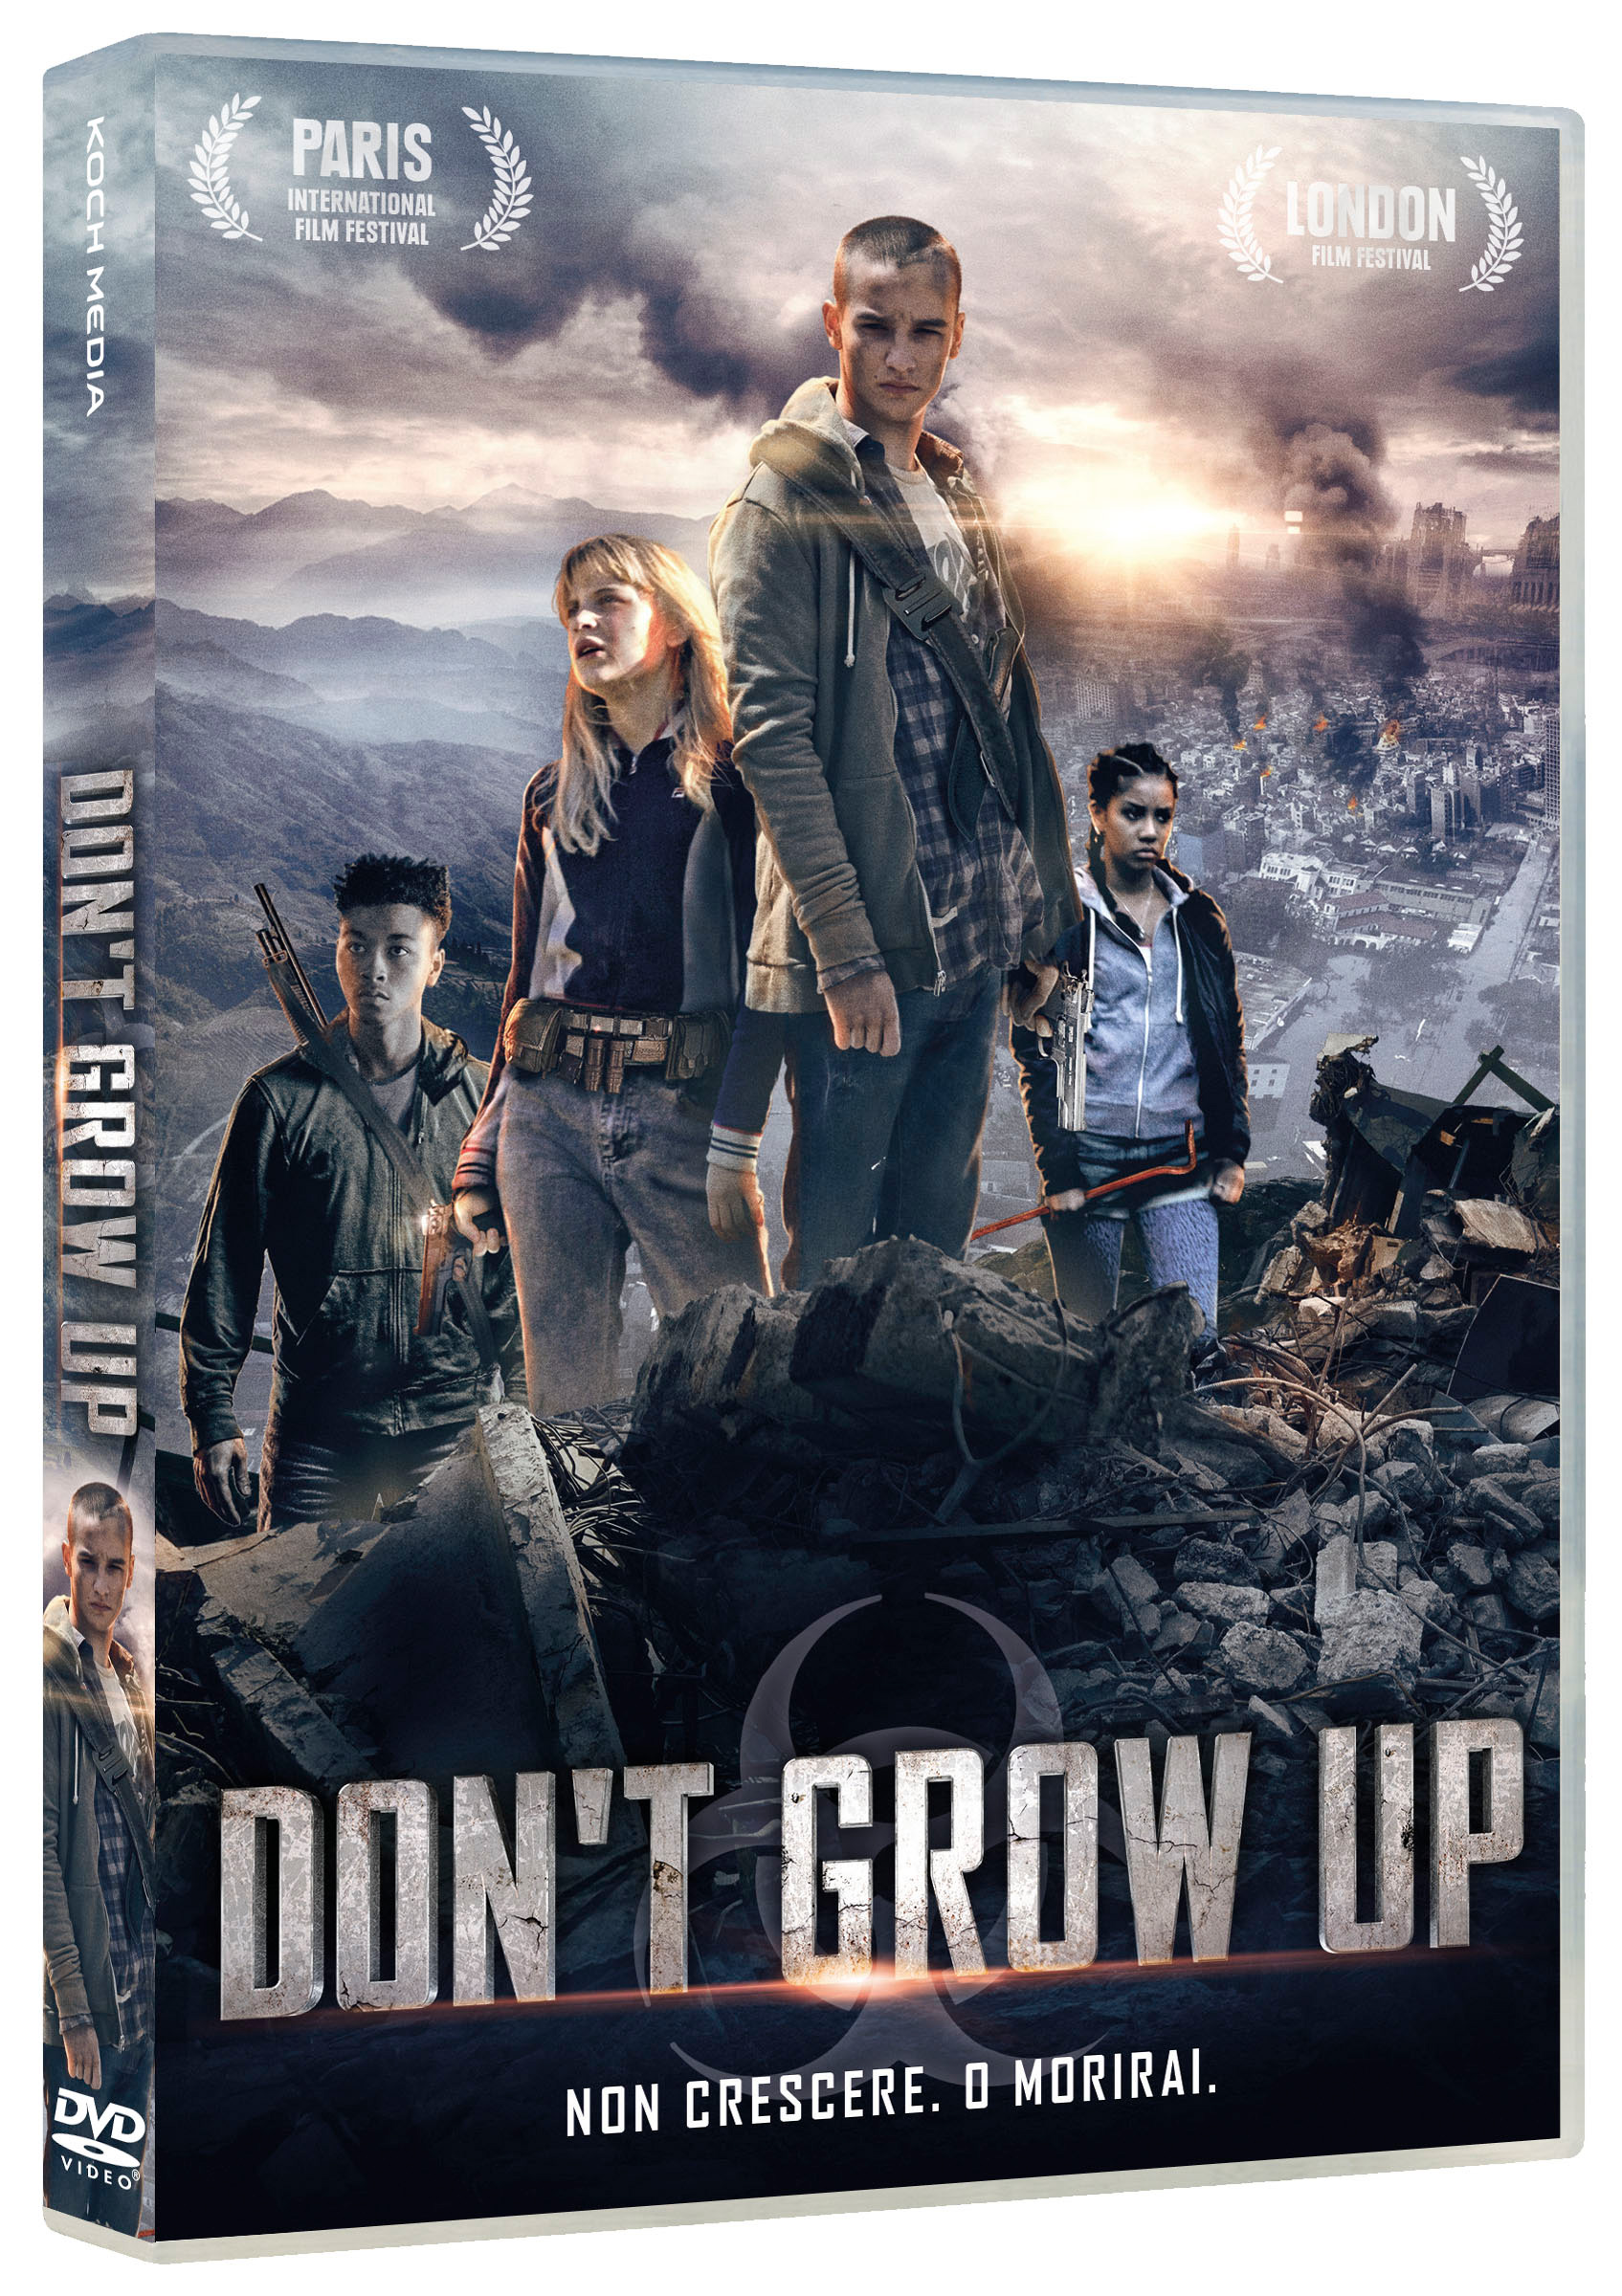 DON'T GROW UP (DVD)